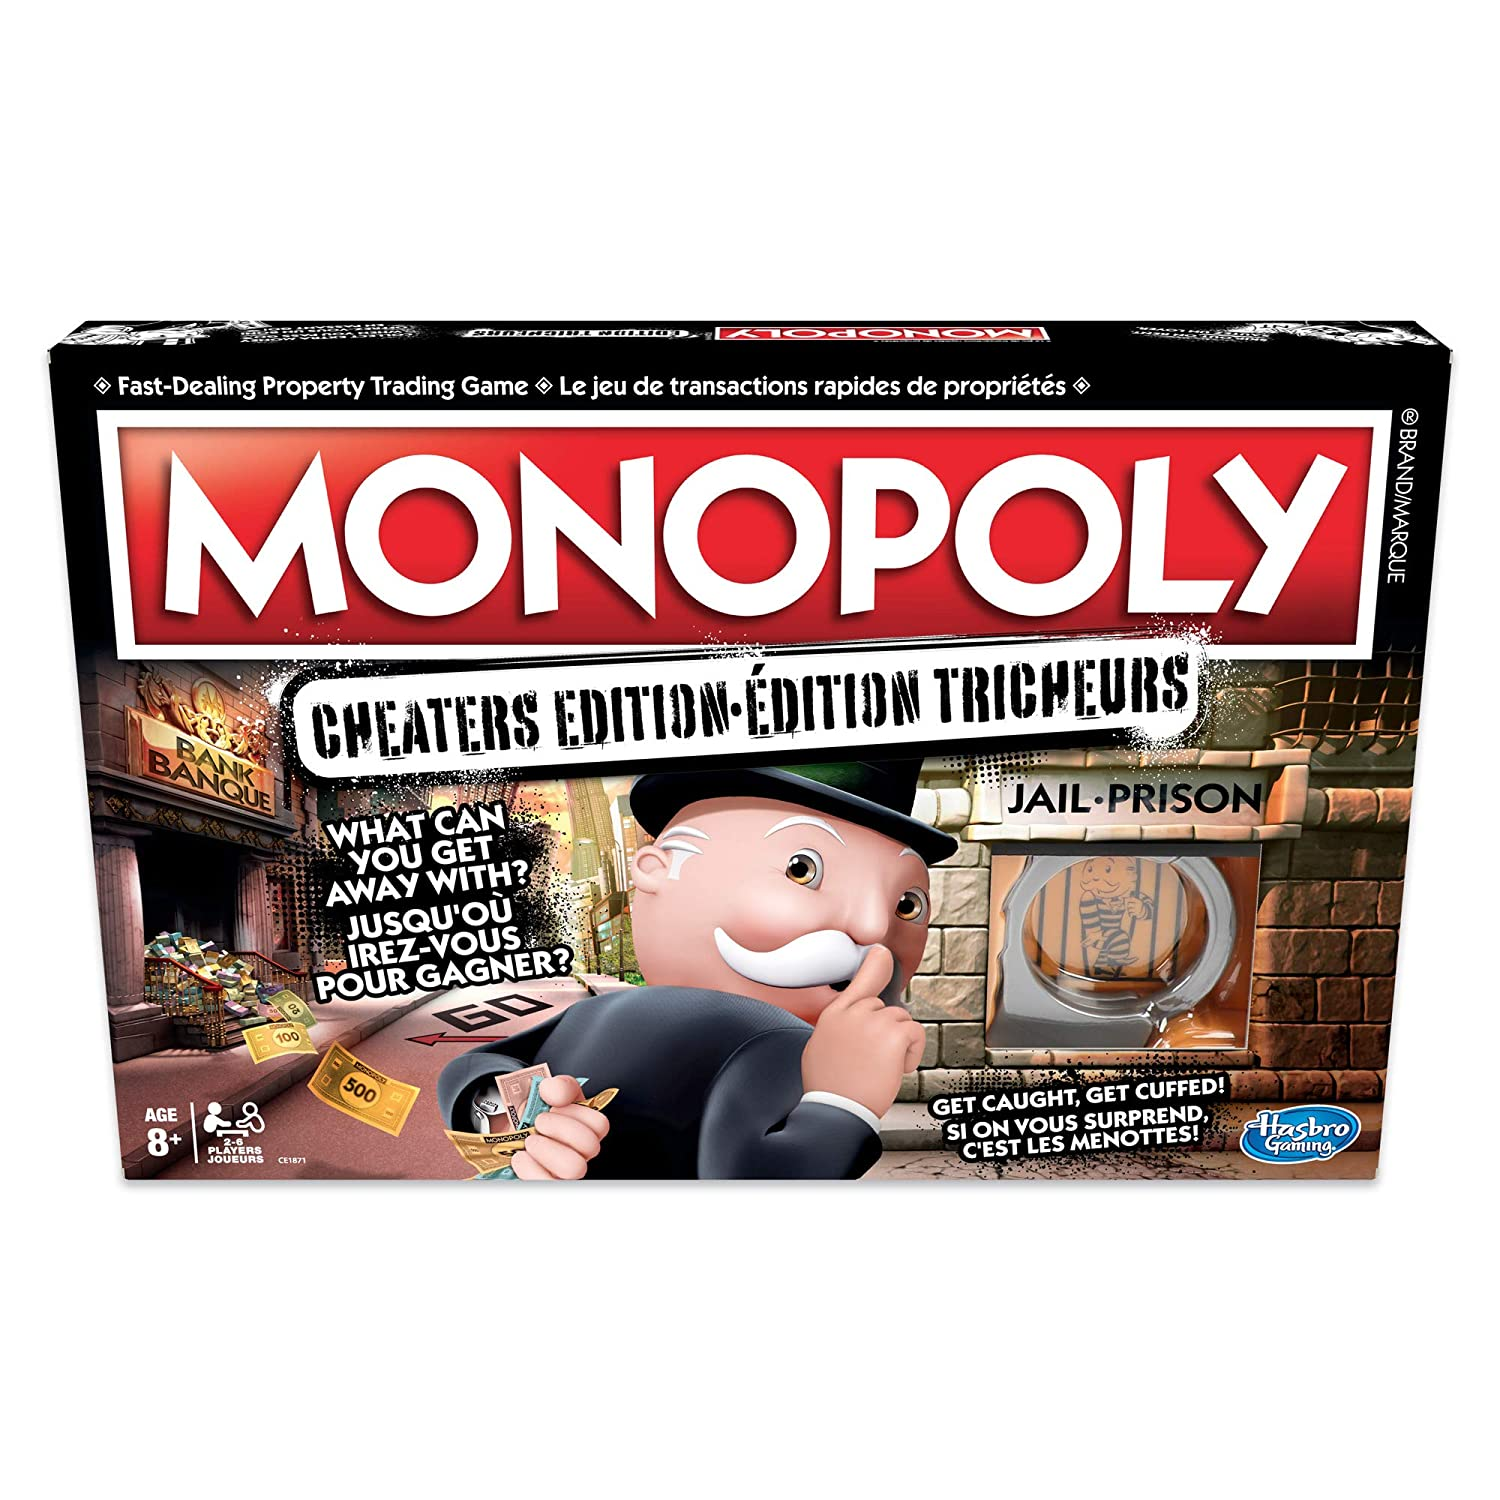 Image result for monopoly cheater